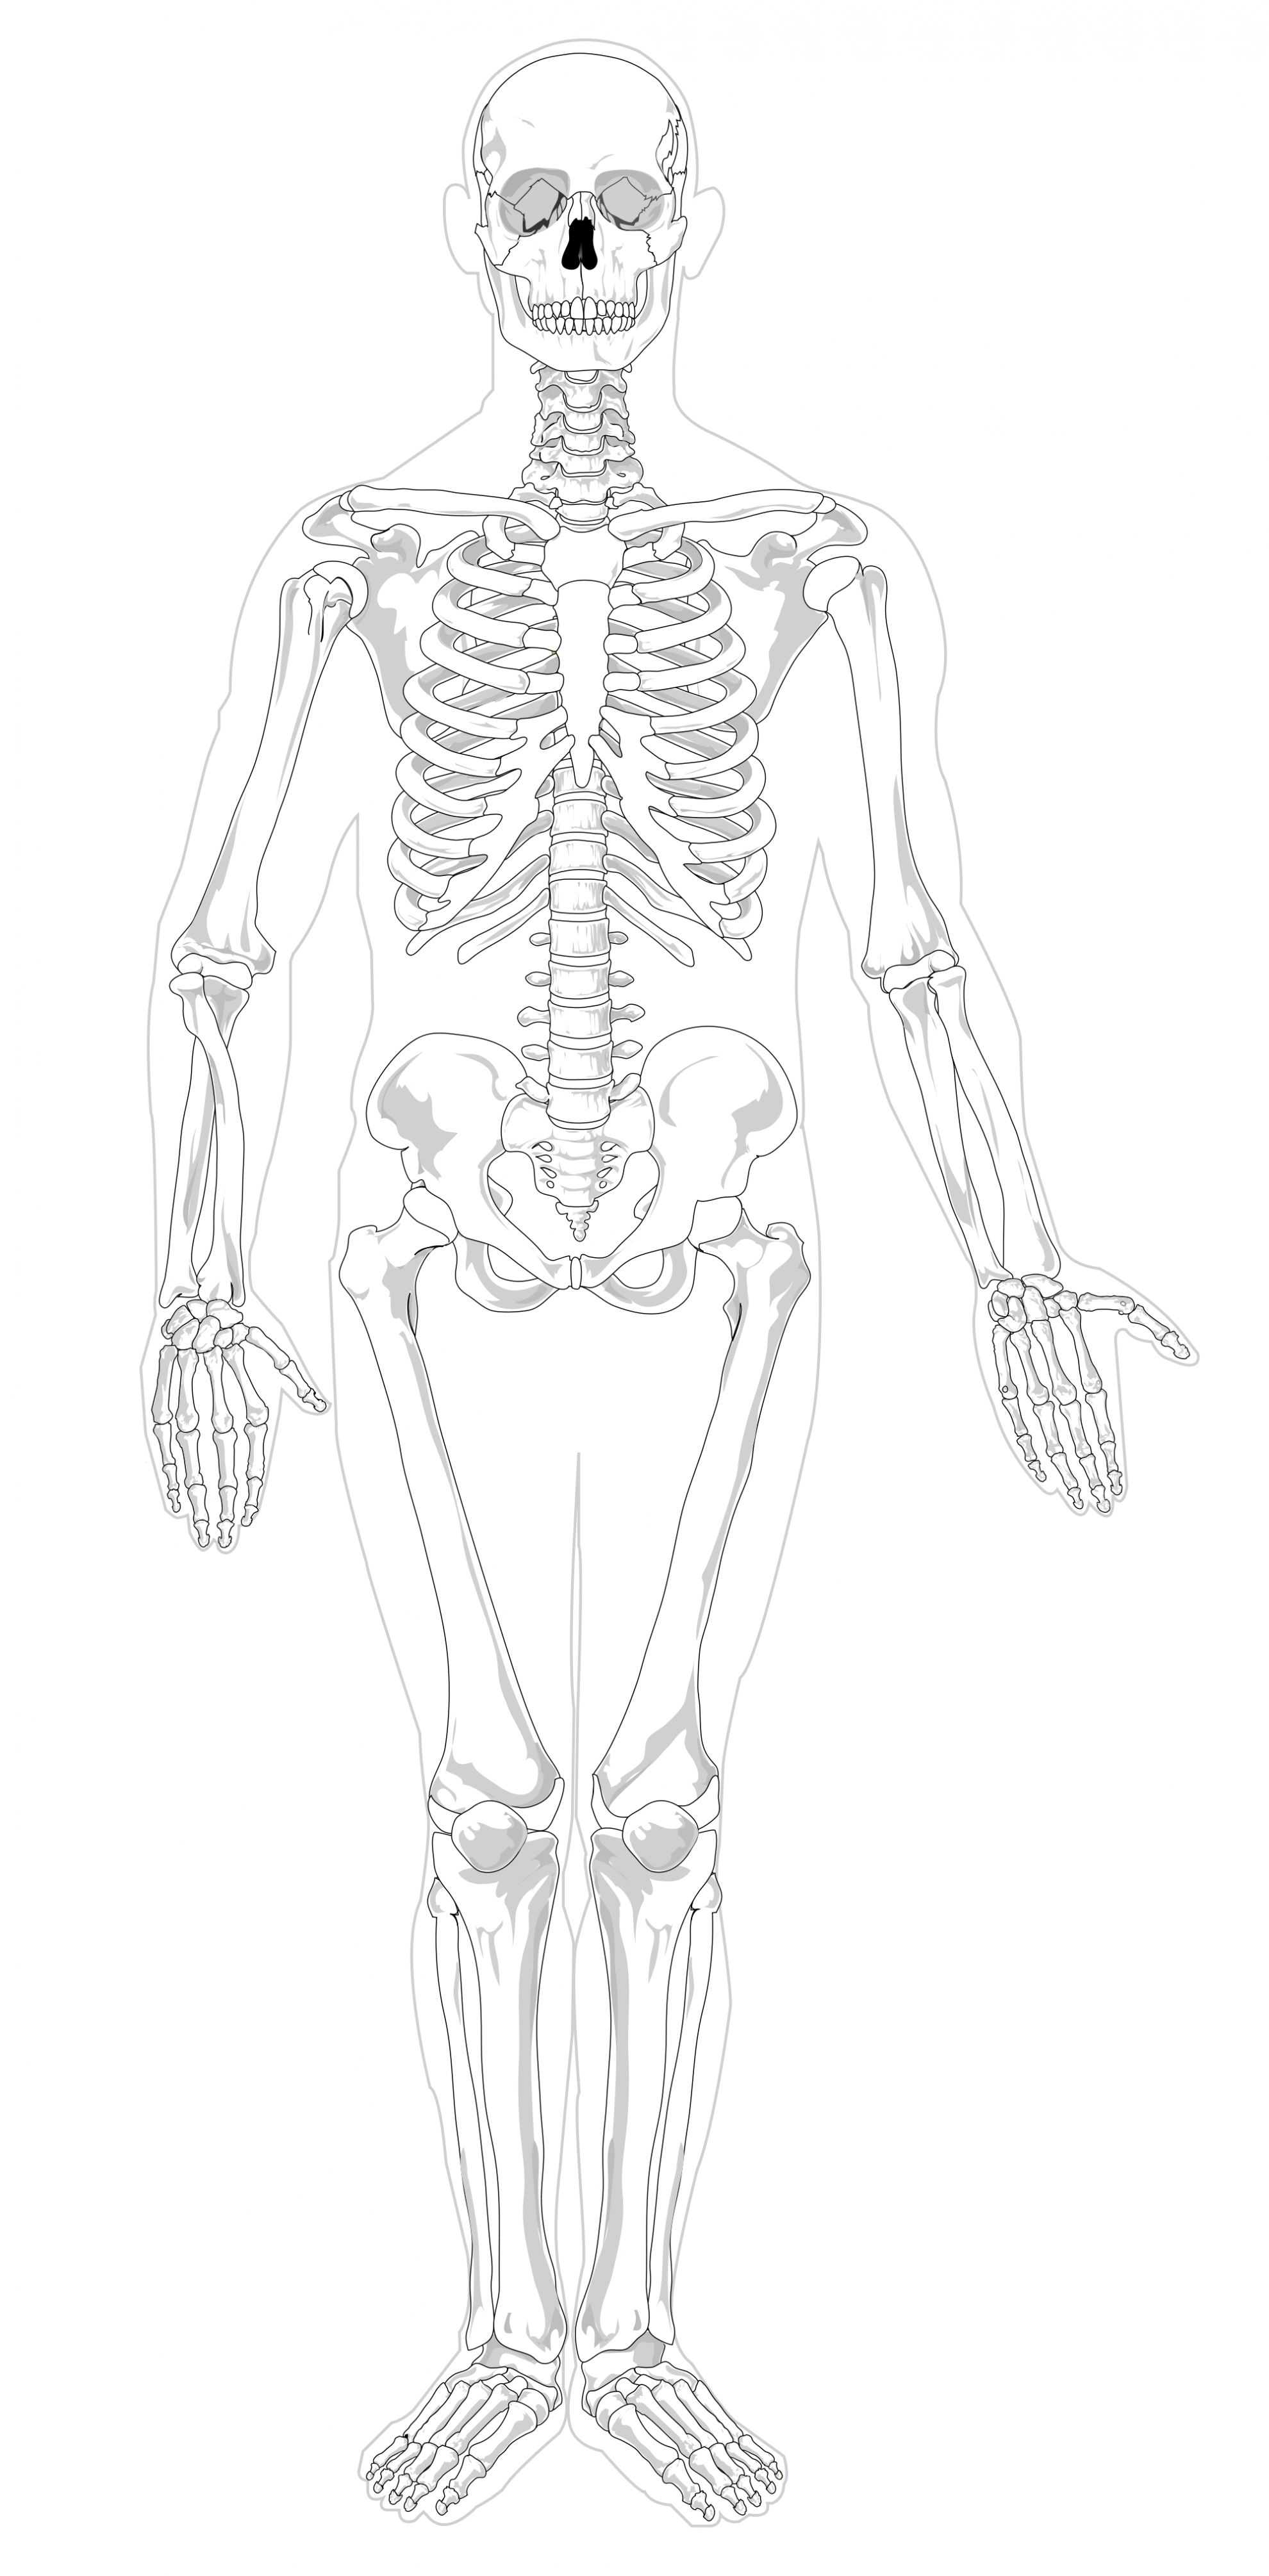 small resolution of unlabeled diagram of the human skeleton unlabeled diagram of the human skeleton bones of the